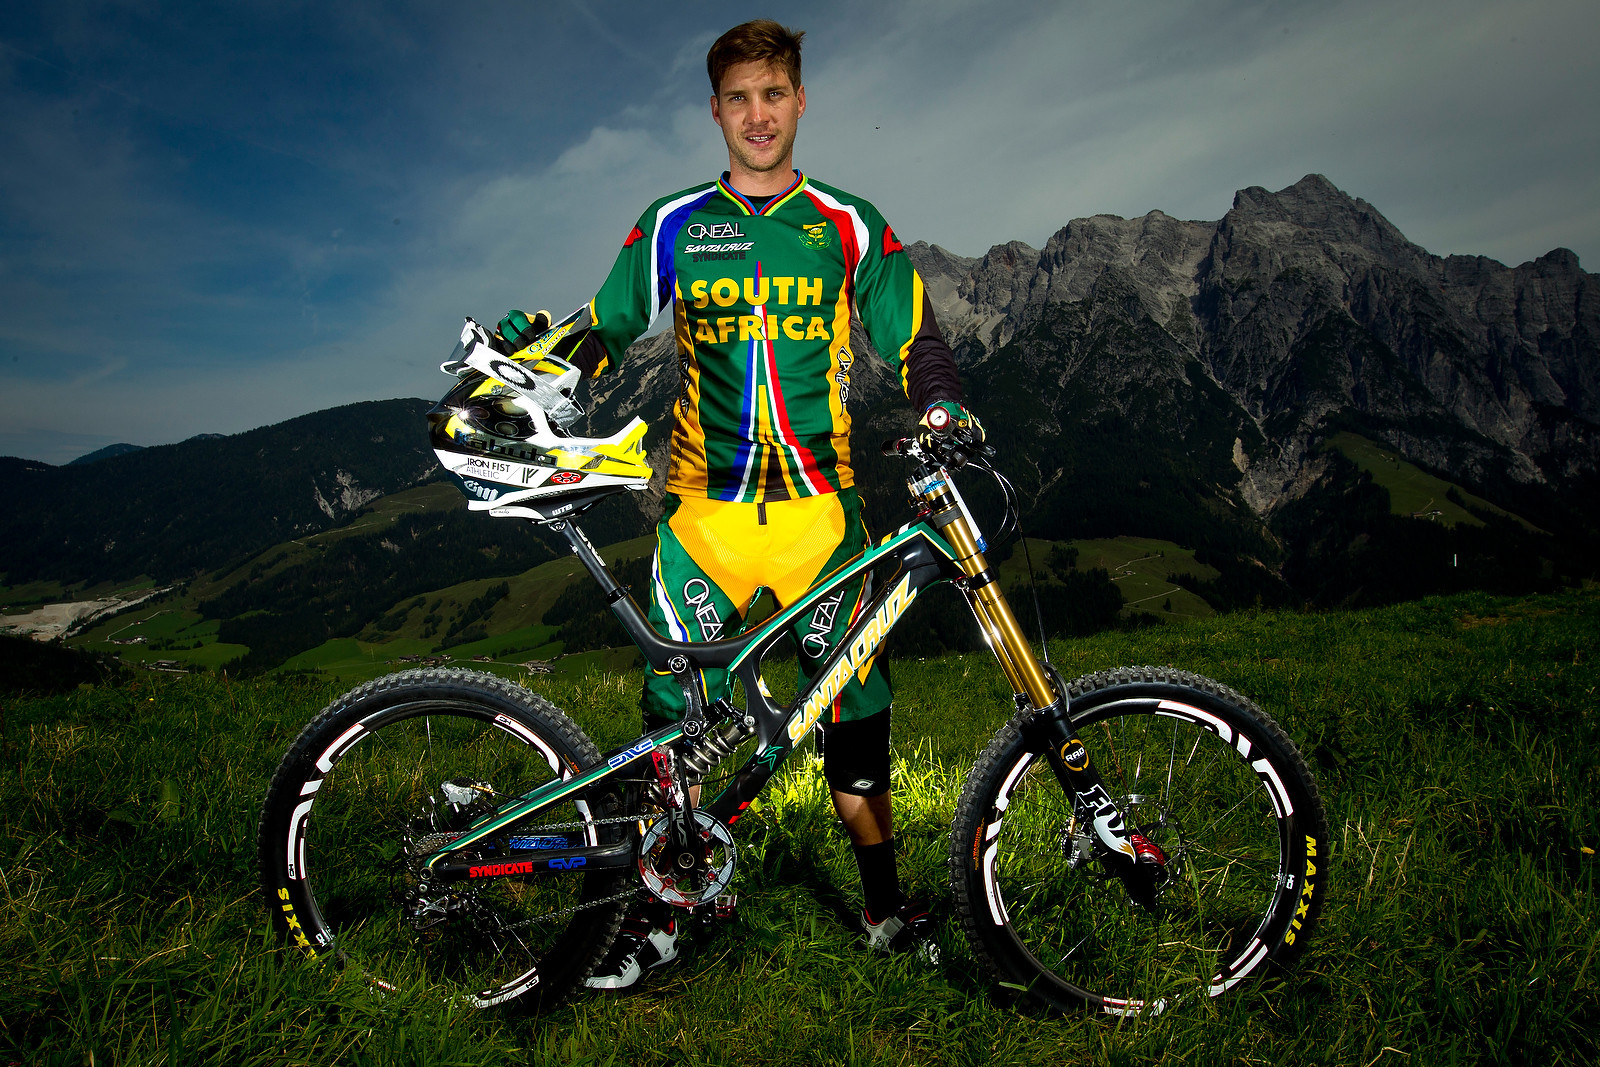 World Champion, Greg Minnaar with his Santa Cruz V10 carbon - World Championships Riders and Bikes - Mountain Biking Pictures - Vital MTB